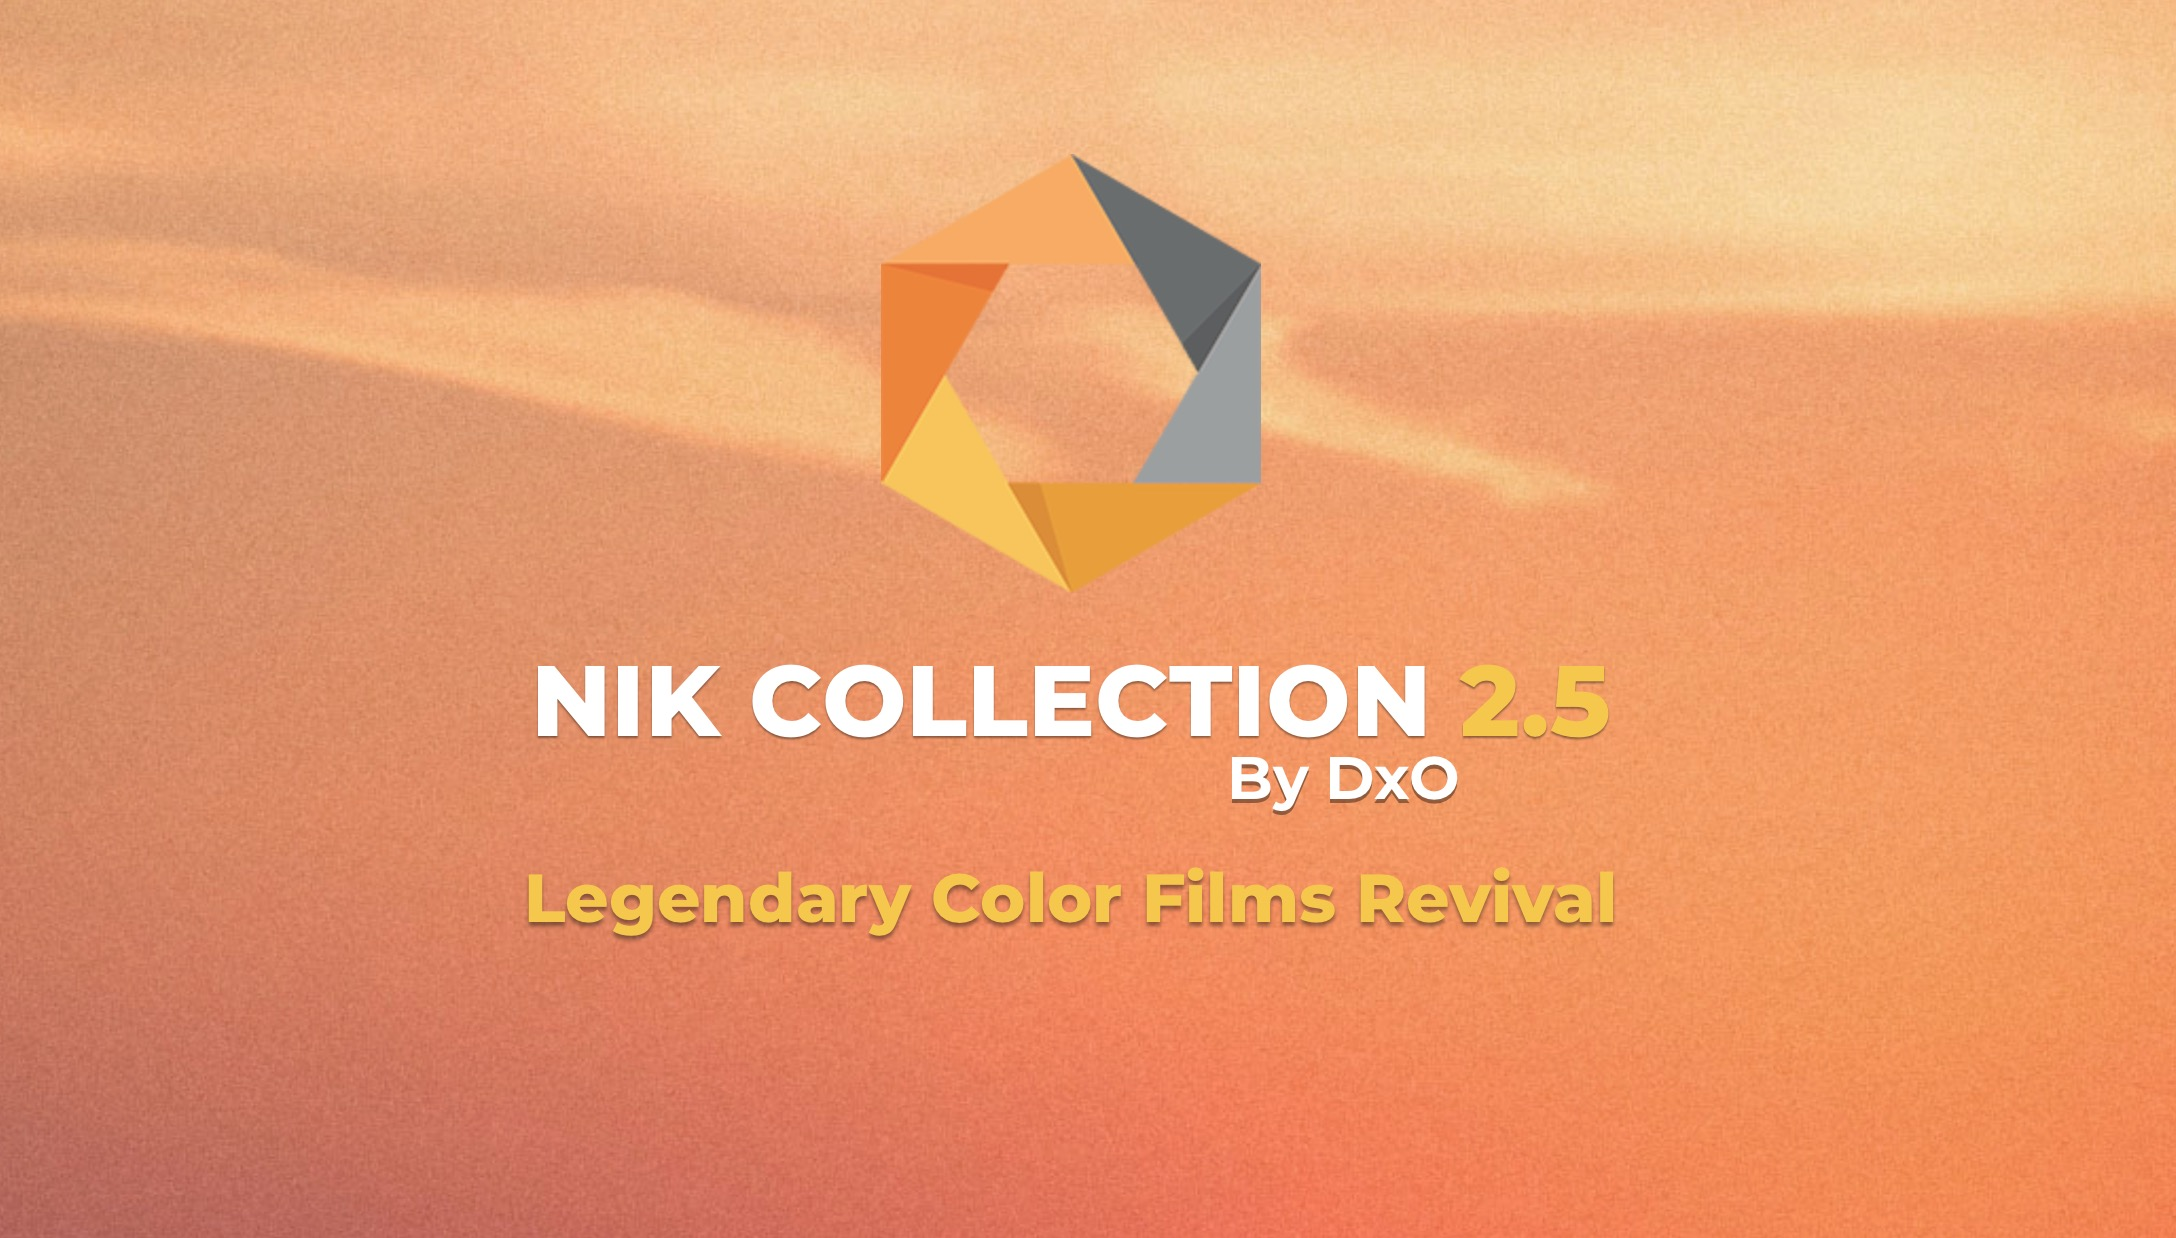 Naufragio ventana Zoológico de noche  Nik Collection 2.5 update adds new color film emulations and Affinity Photo  support: Digital Photography Review